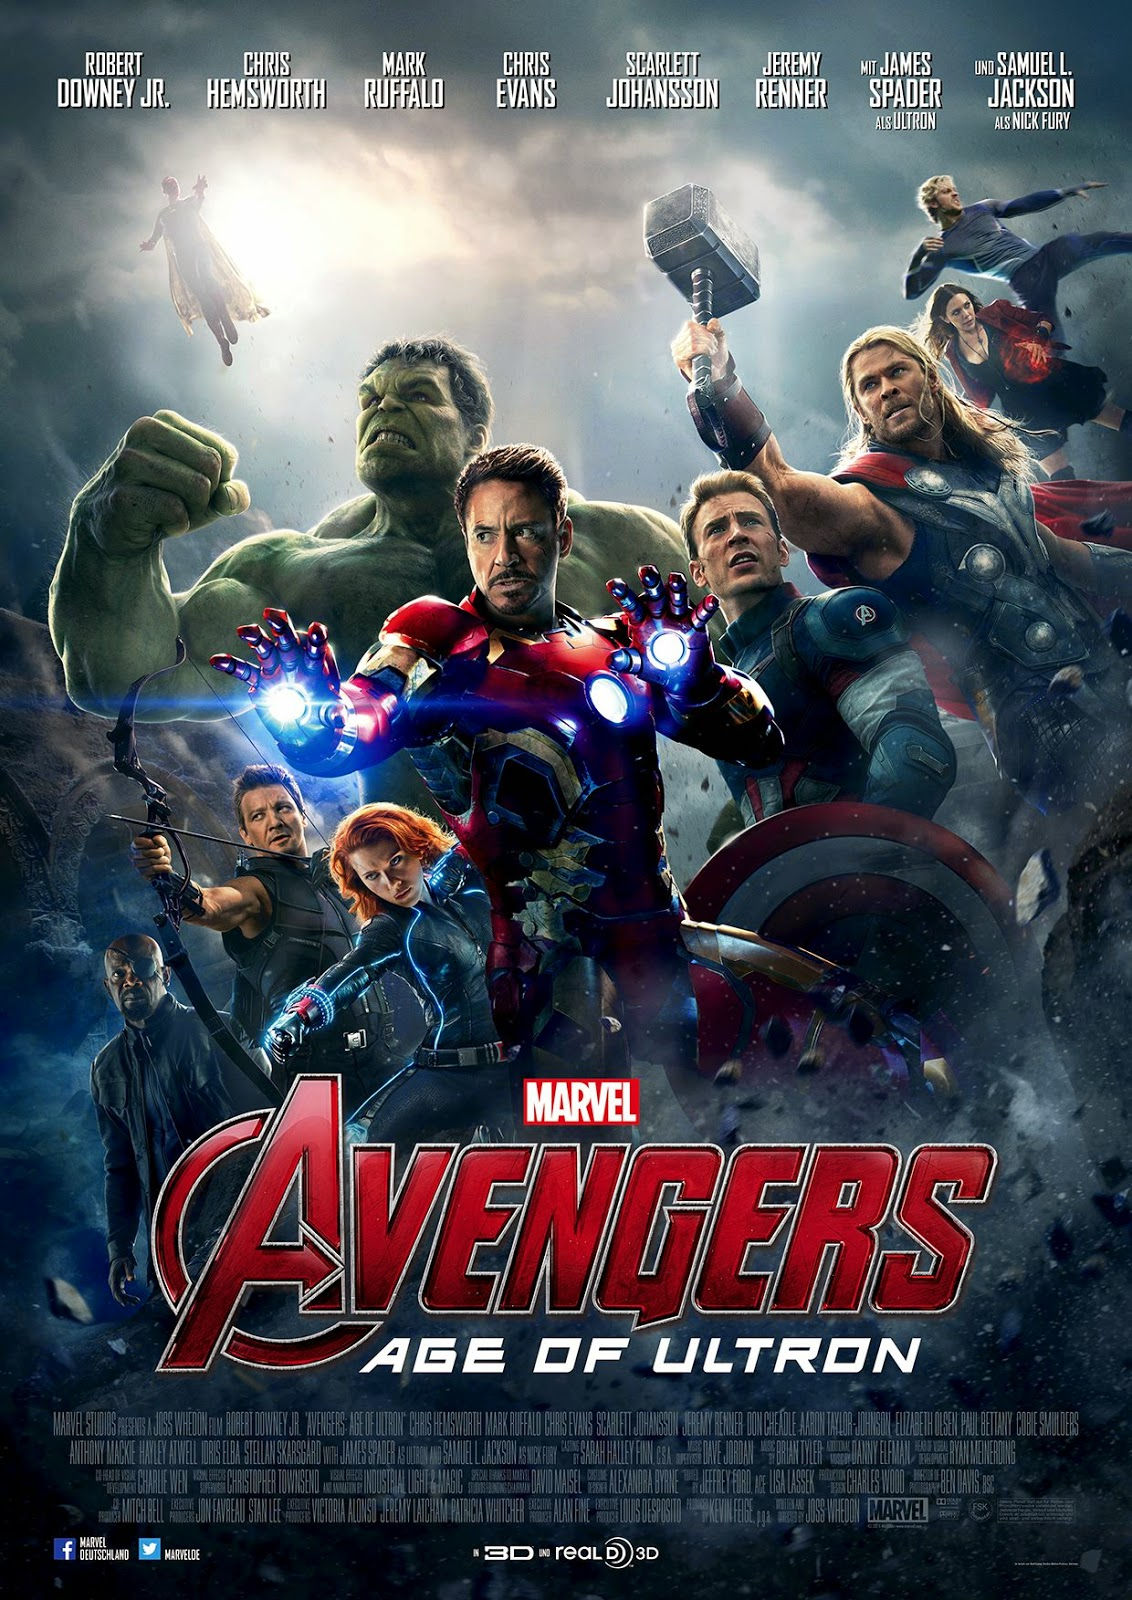 Tonton Avengers 2: Age of Ultron